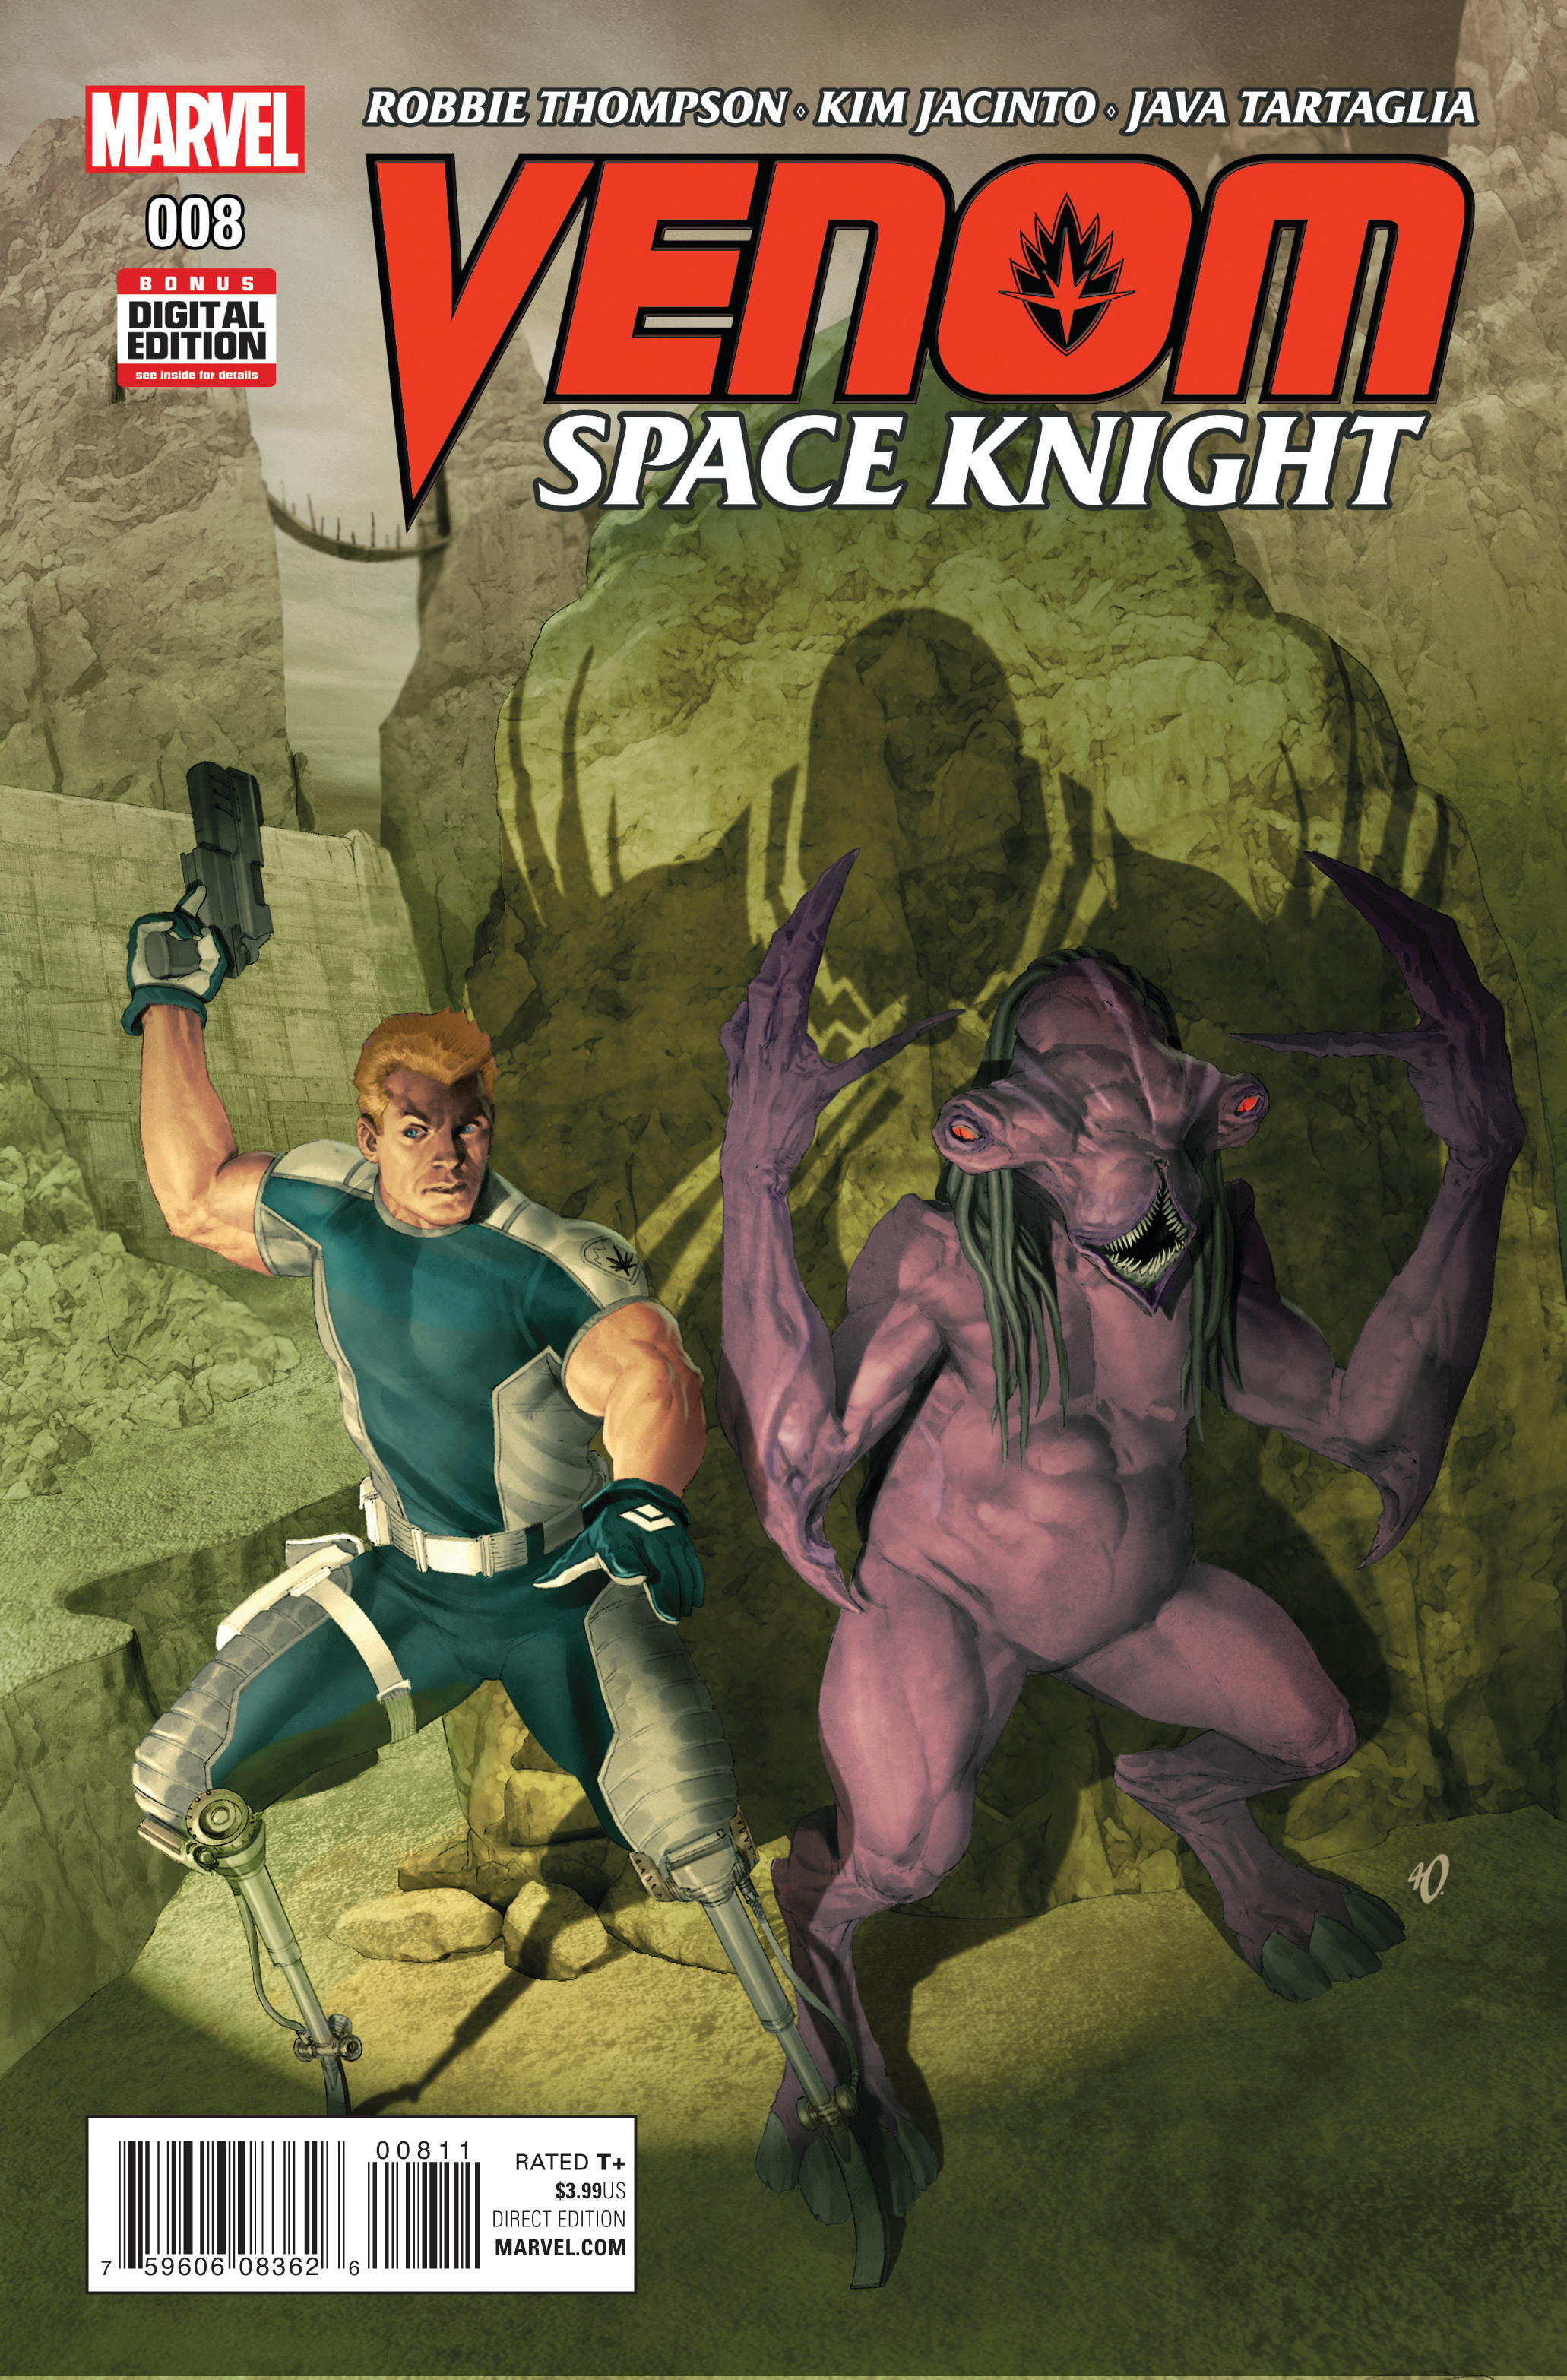 VENOM SPACE KNIGHT #8